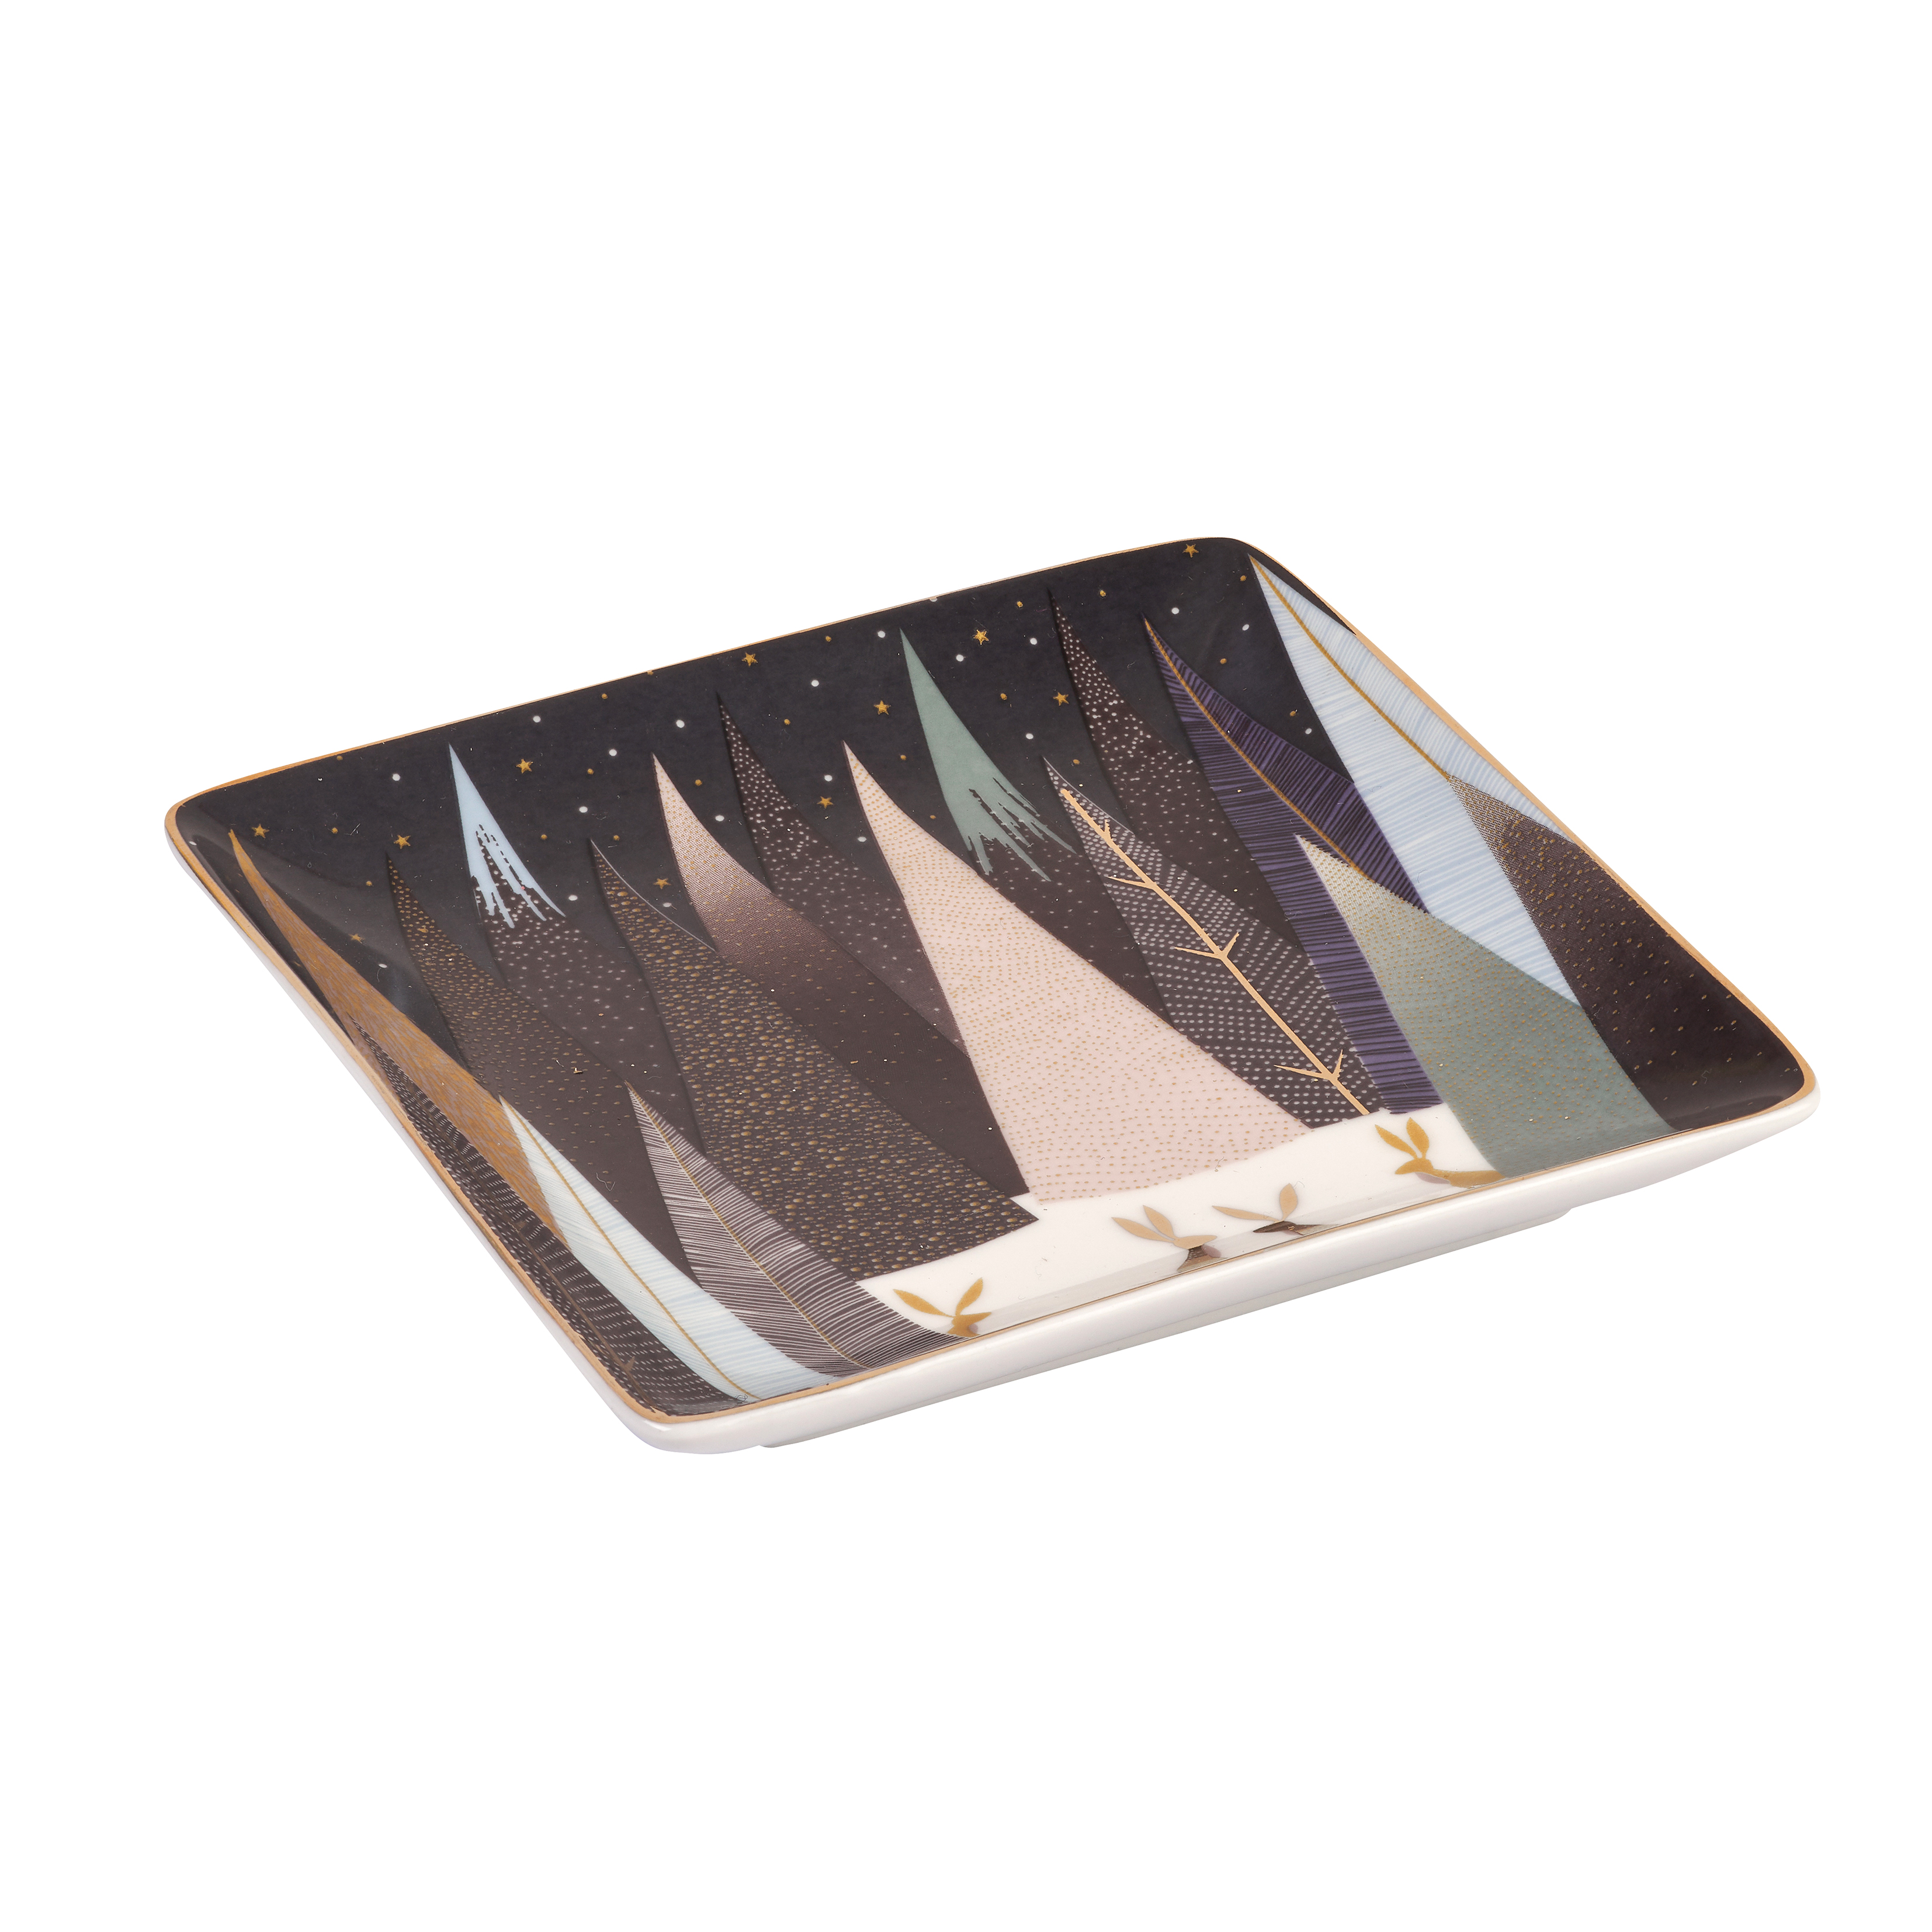 Sara Miller London for Portmeirion Frosted Pines Set of 3 Square Trays 4.5 Inch image number 1